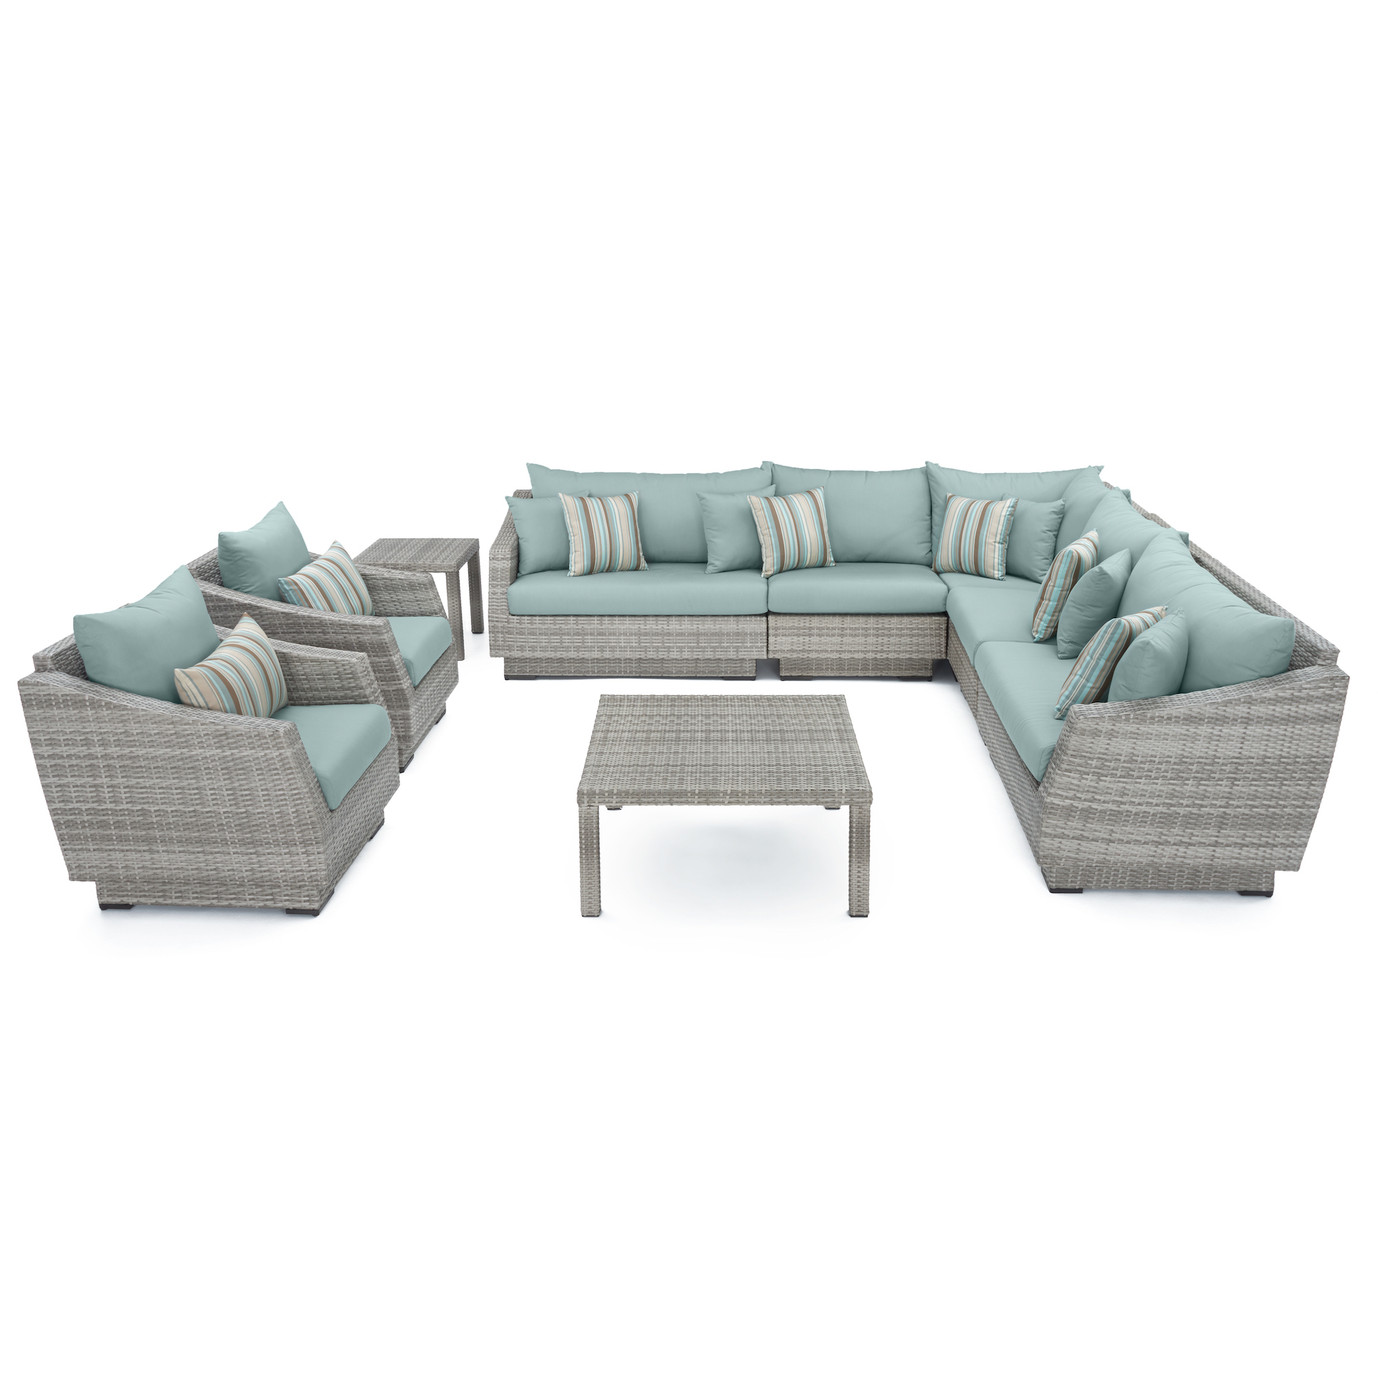 Cannes™ 9pc Sectional and Table - Bliss Blue